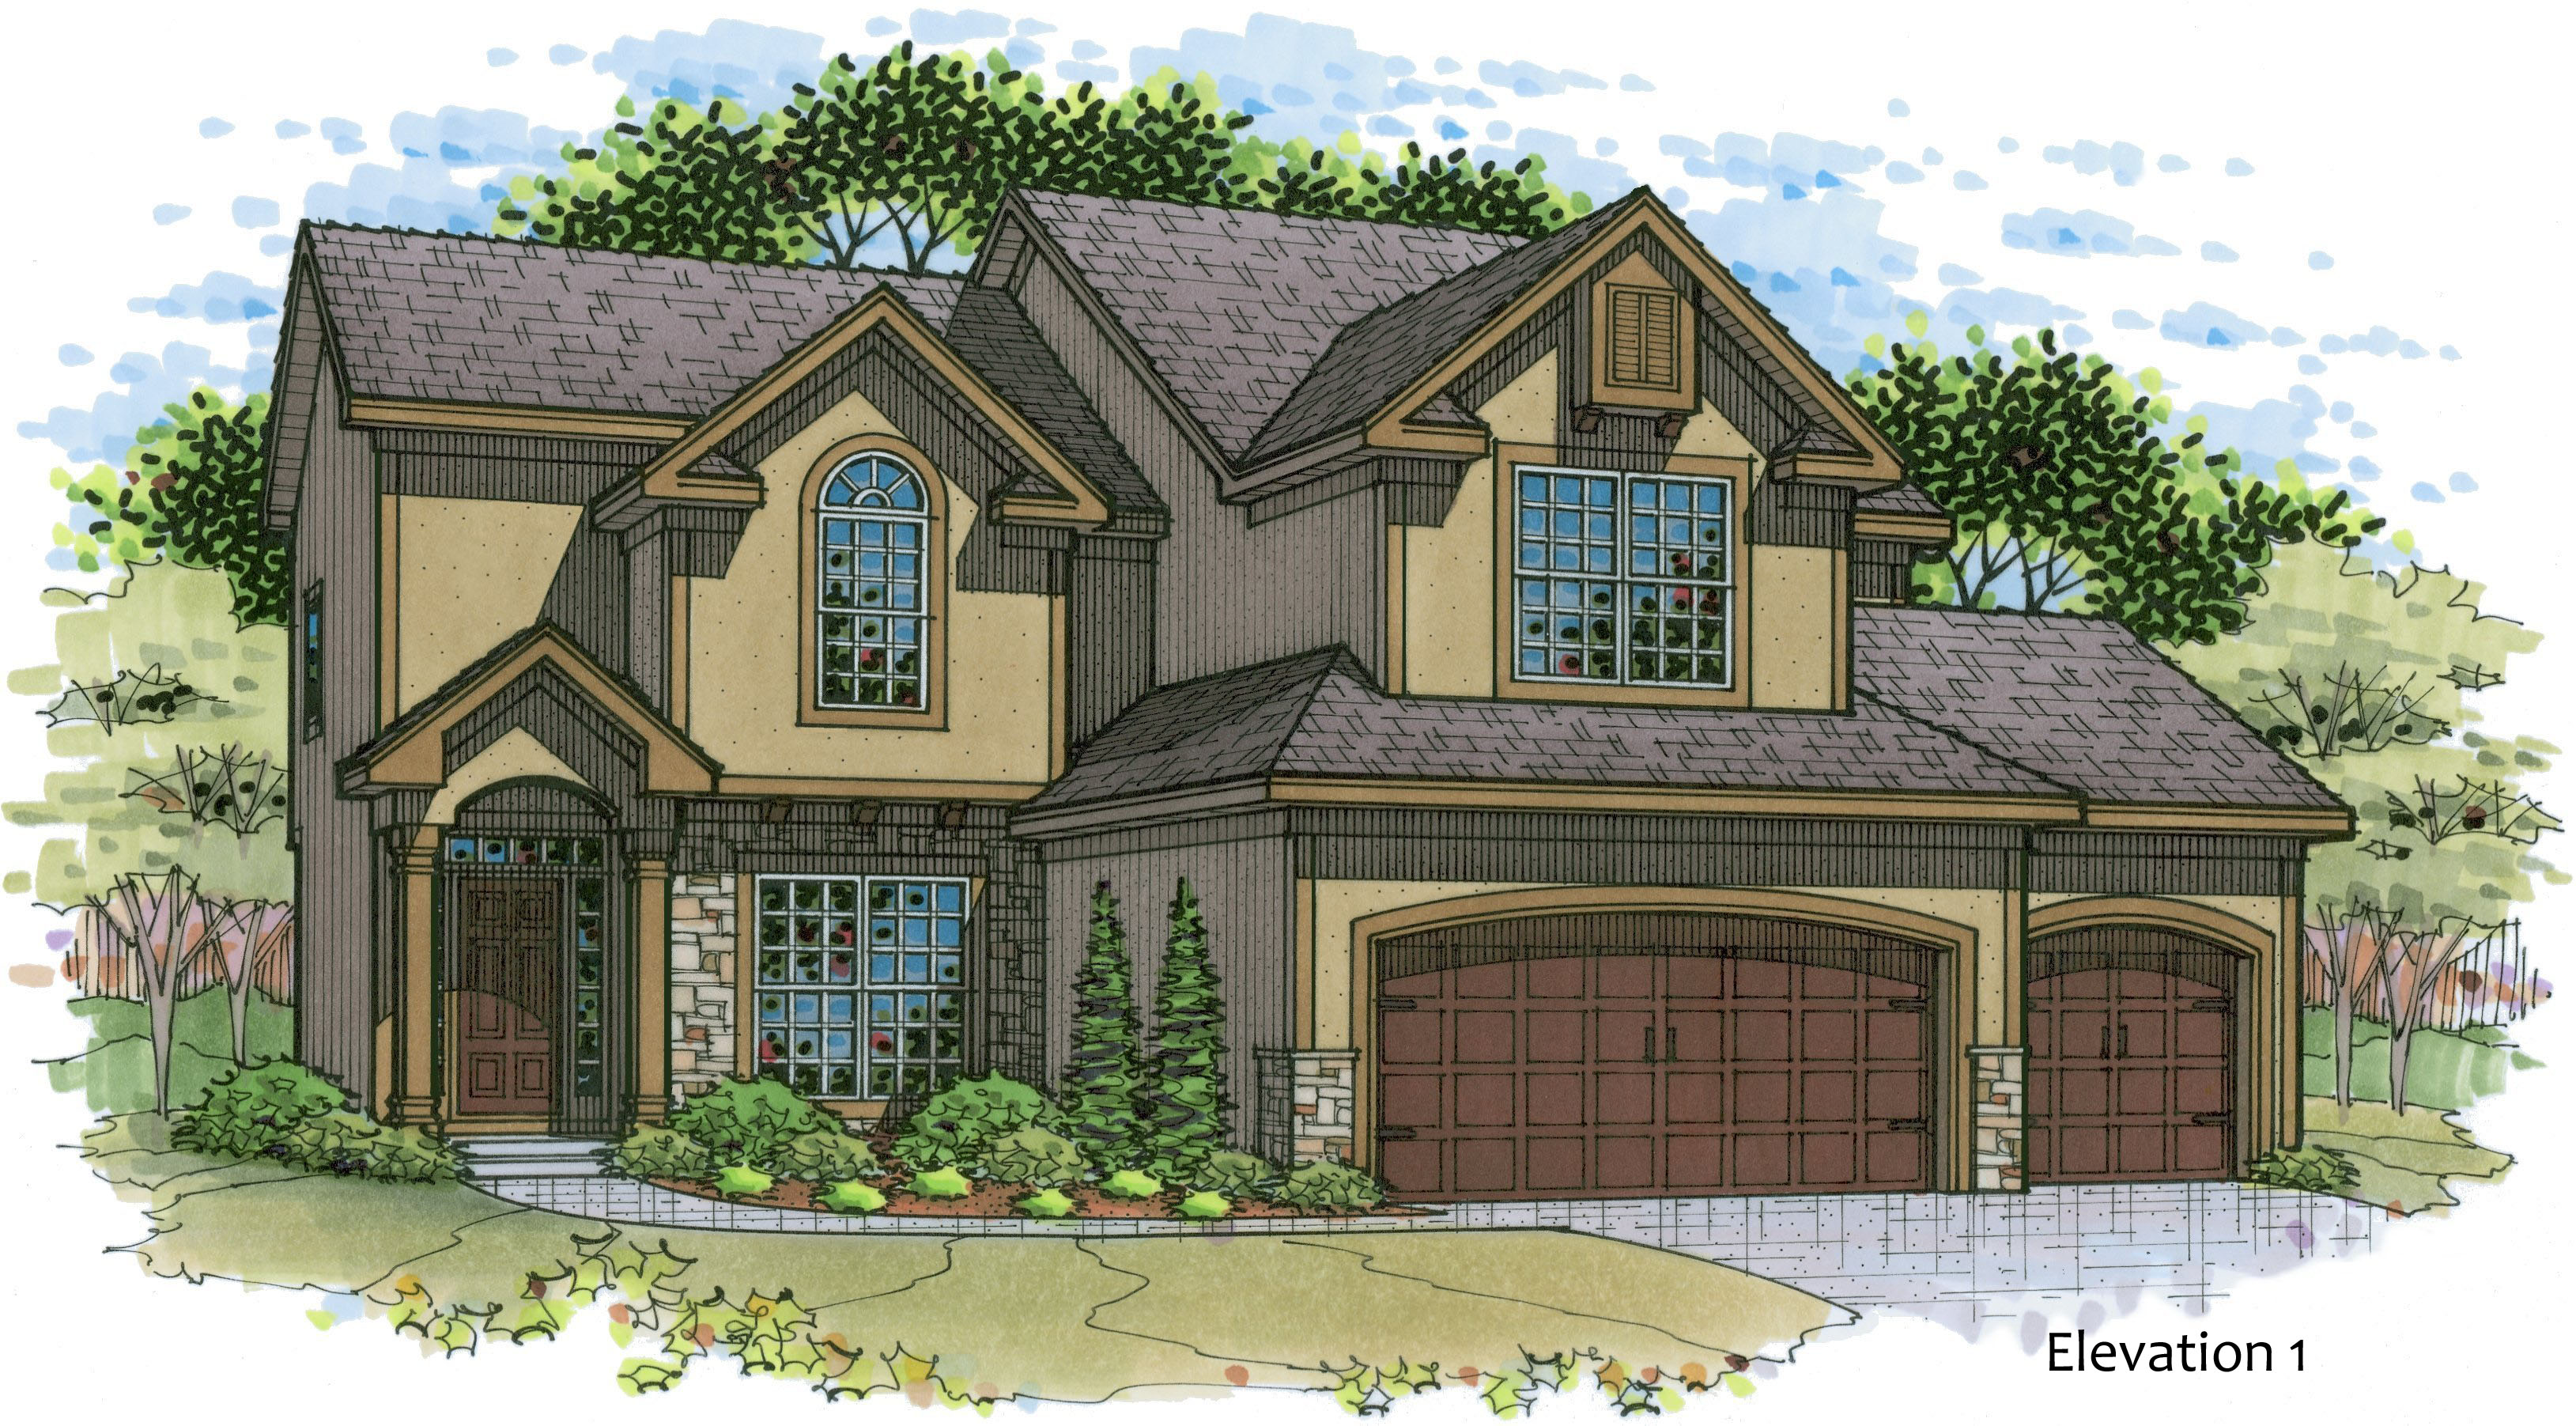 Madison elevation 1 color rendering